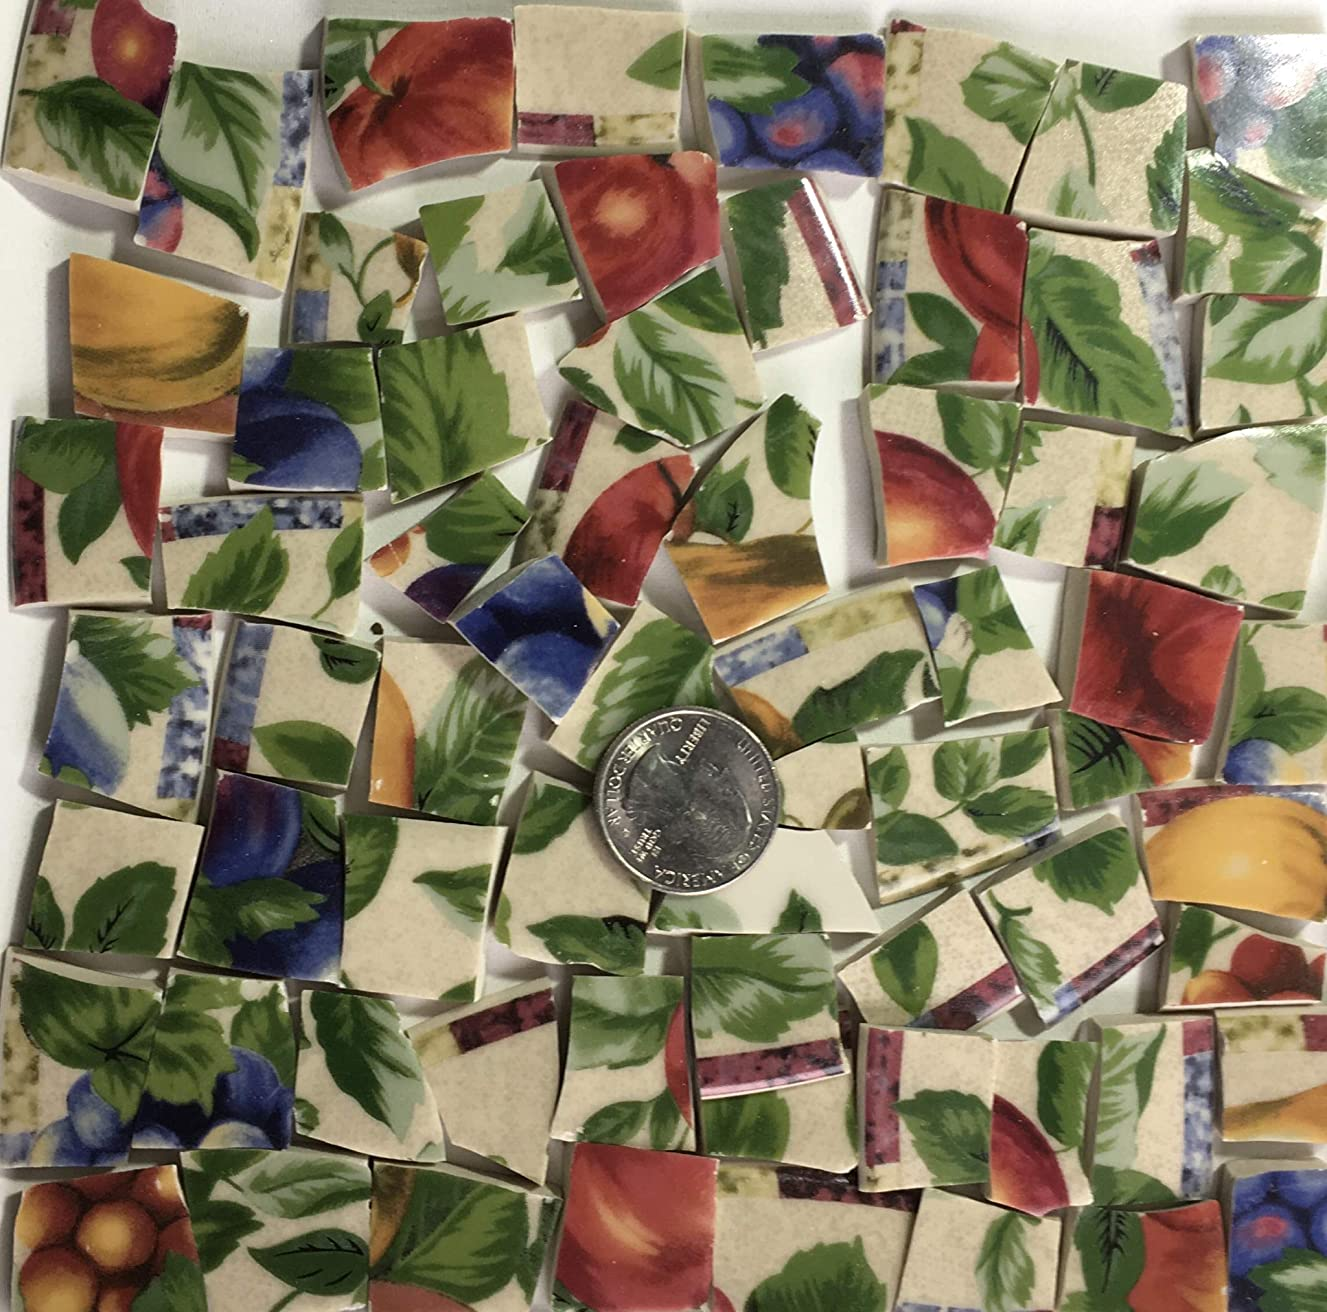 Mosaic Art & Craft Supply ~ Colorful Fruit & Leaves on Beige Tiles (A660)